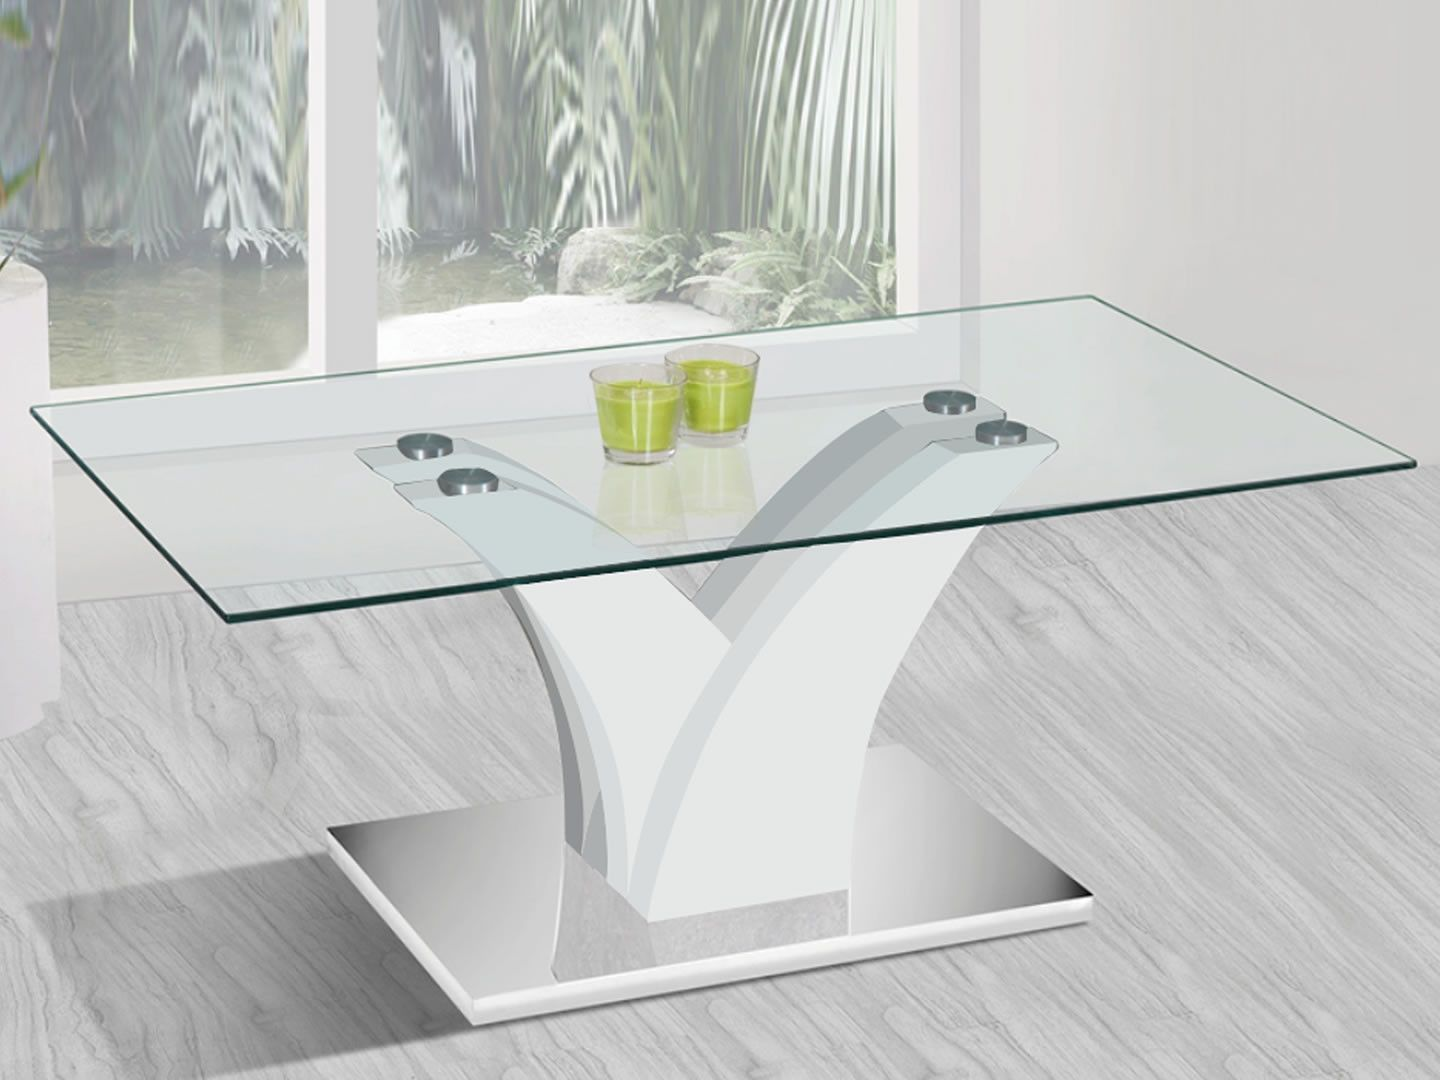 Tables Basses Table Basse Rectangulaire Design En Verre Verga